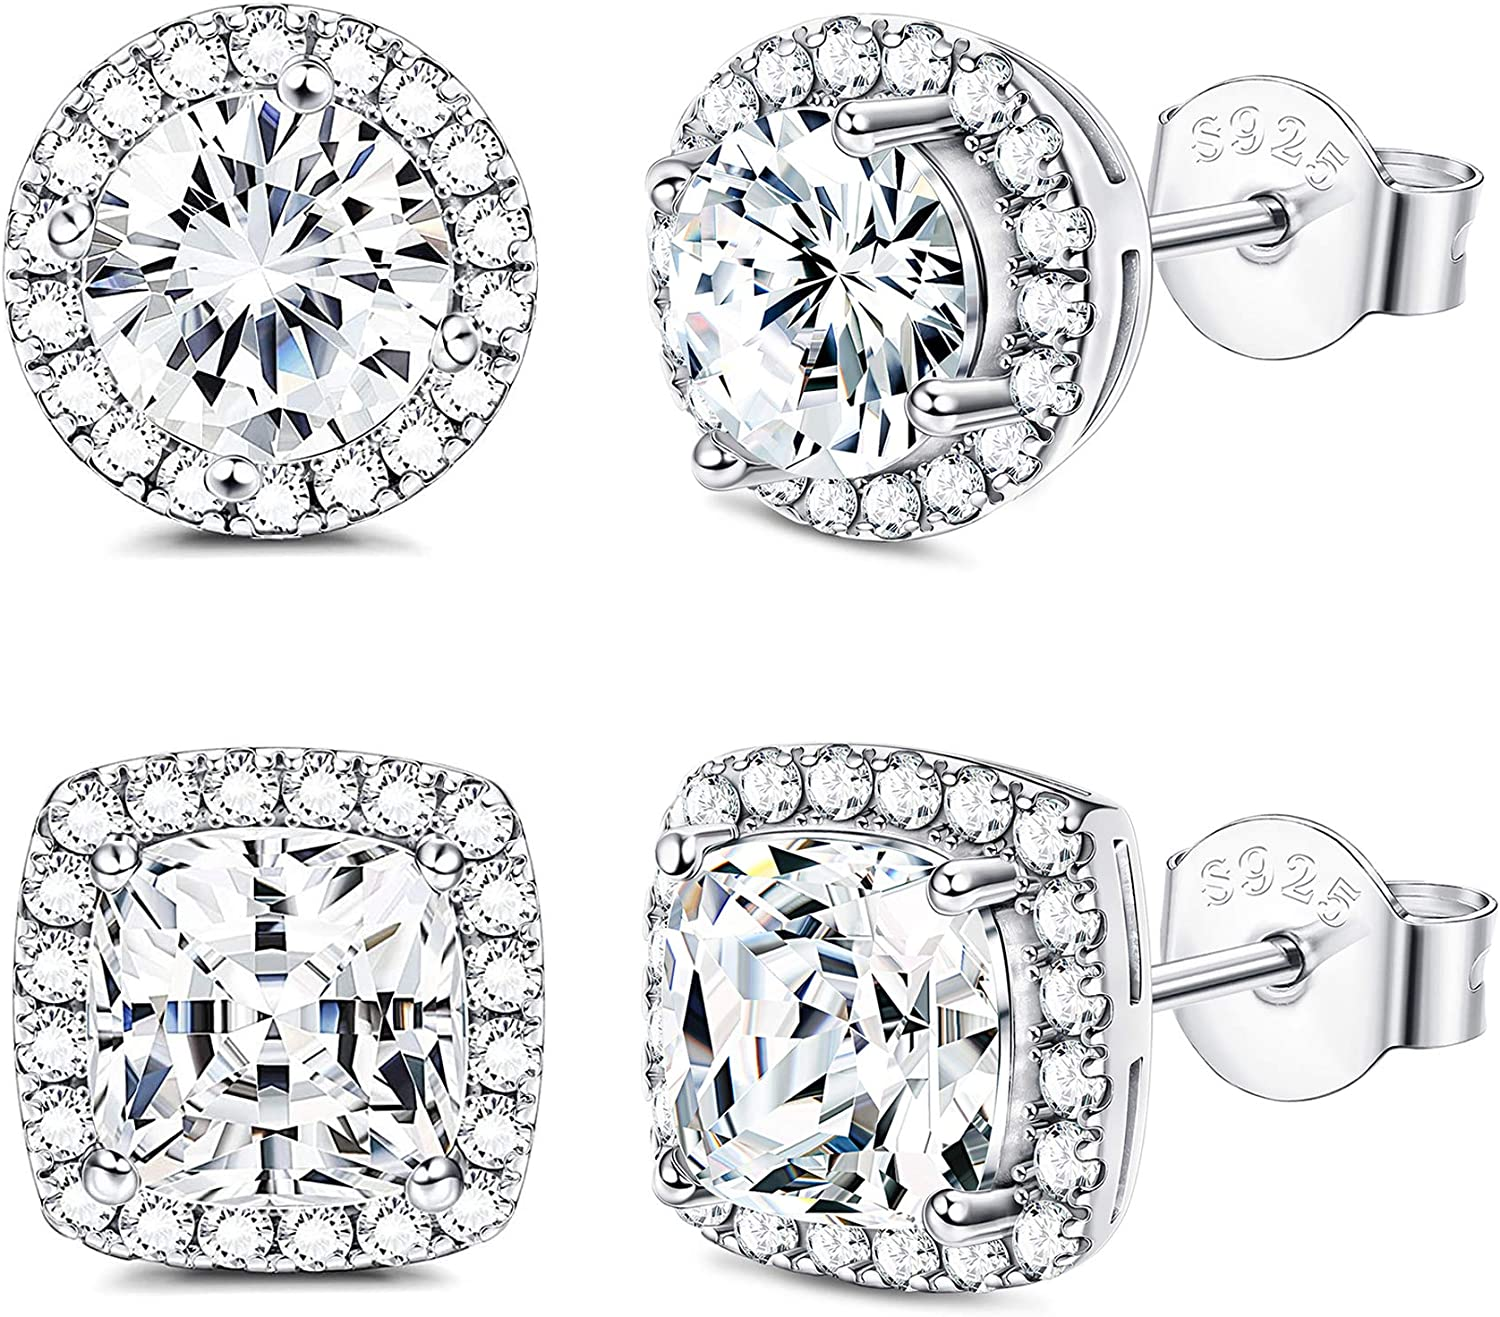 Platinum Plated 9mm Silver Halo Cubic Zirconia Crystal Stud Earrings Gift Box